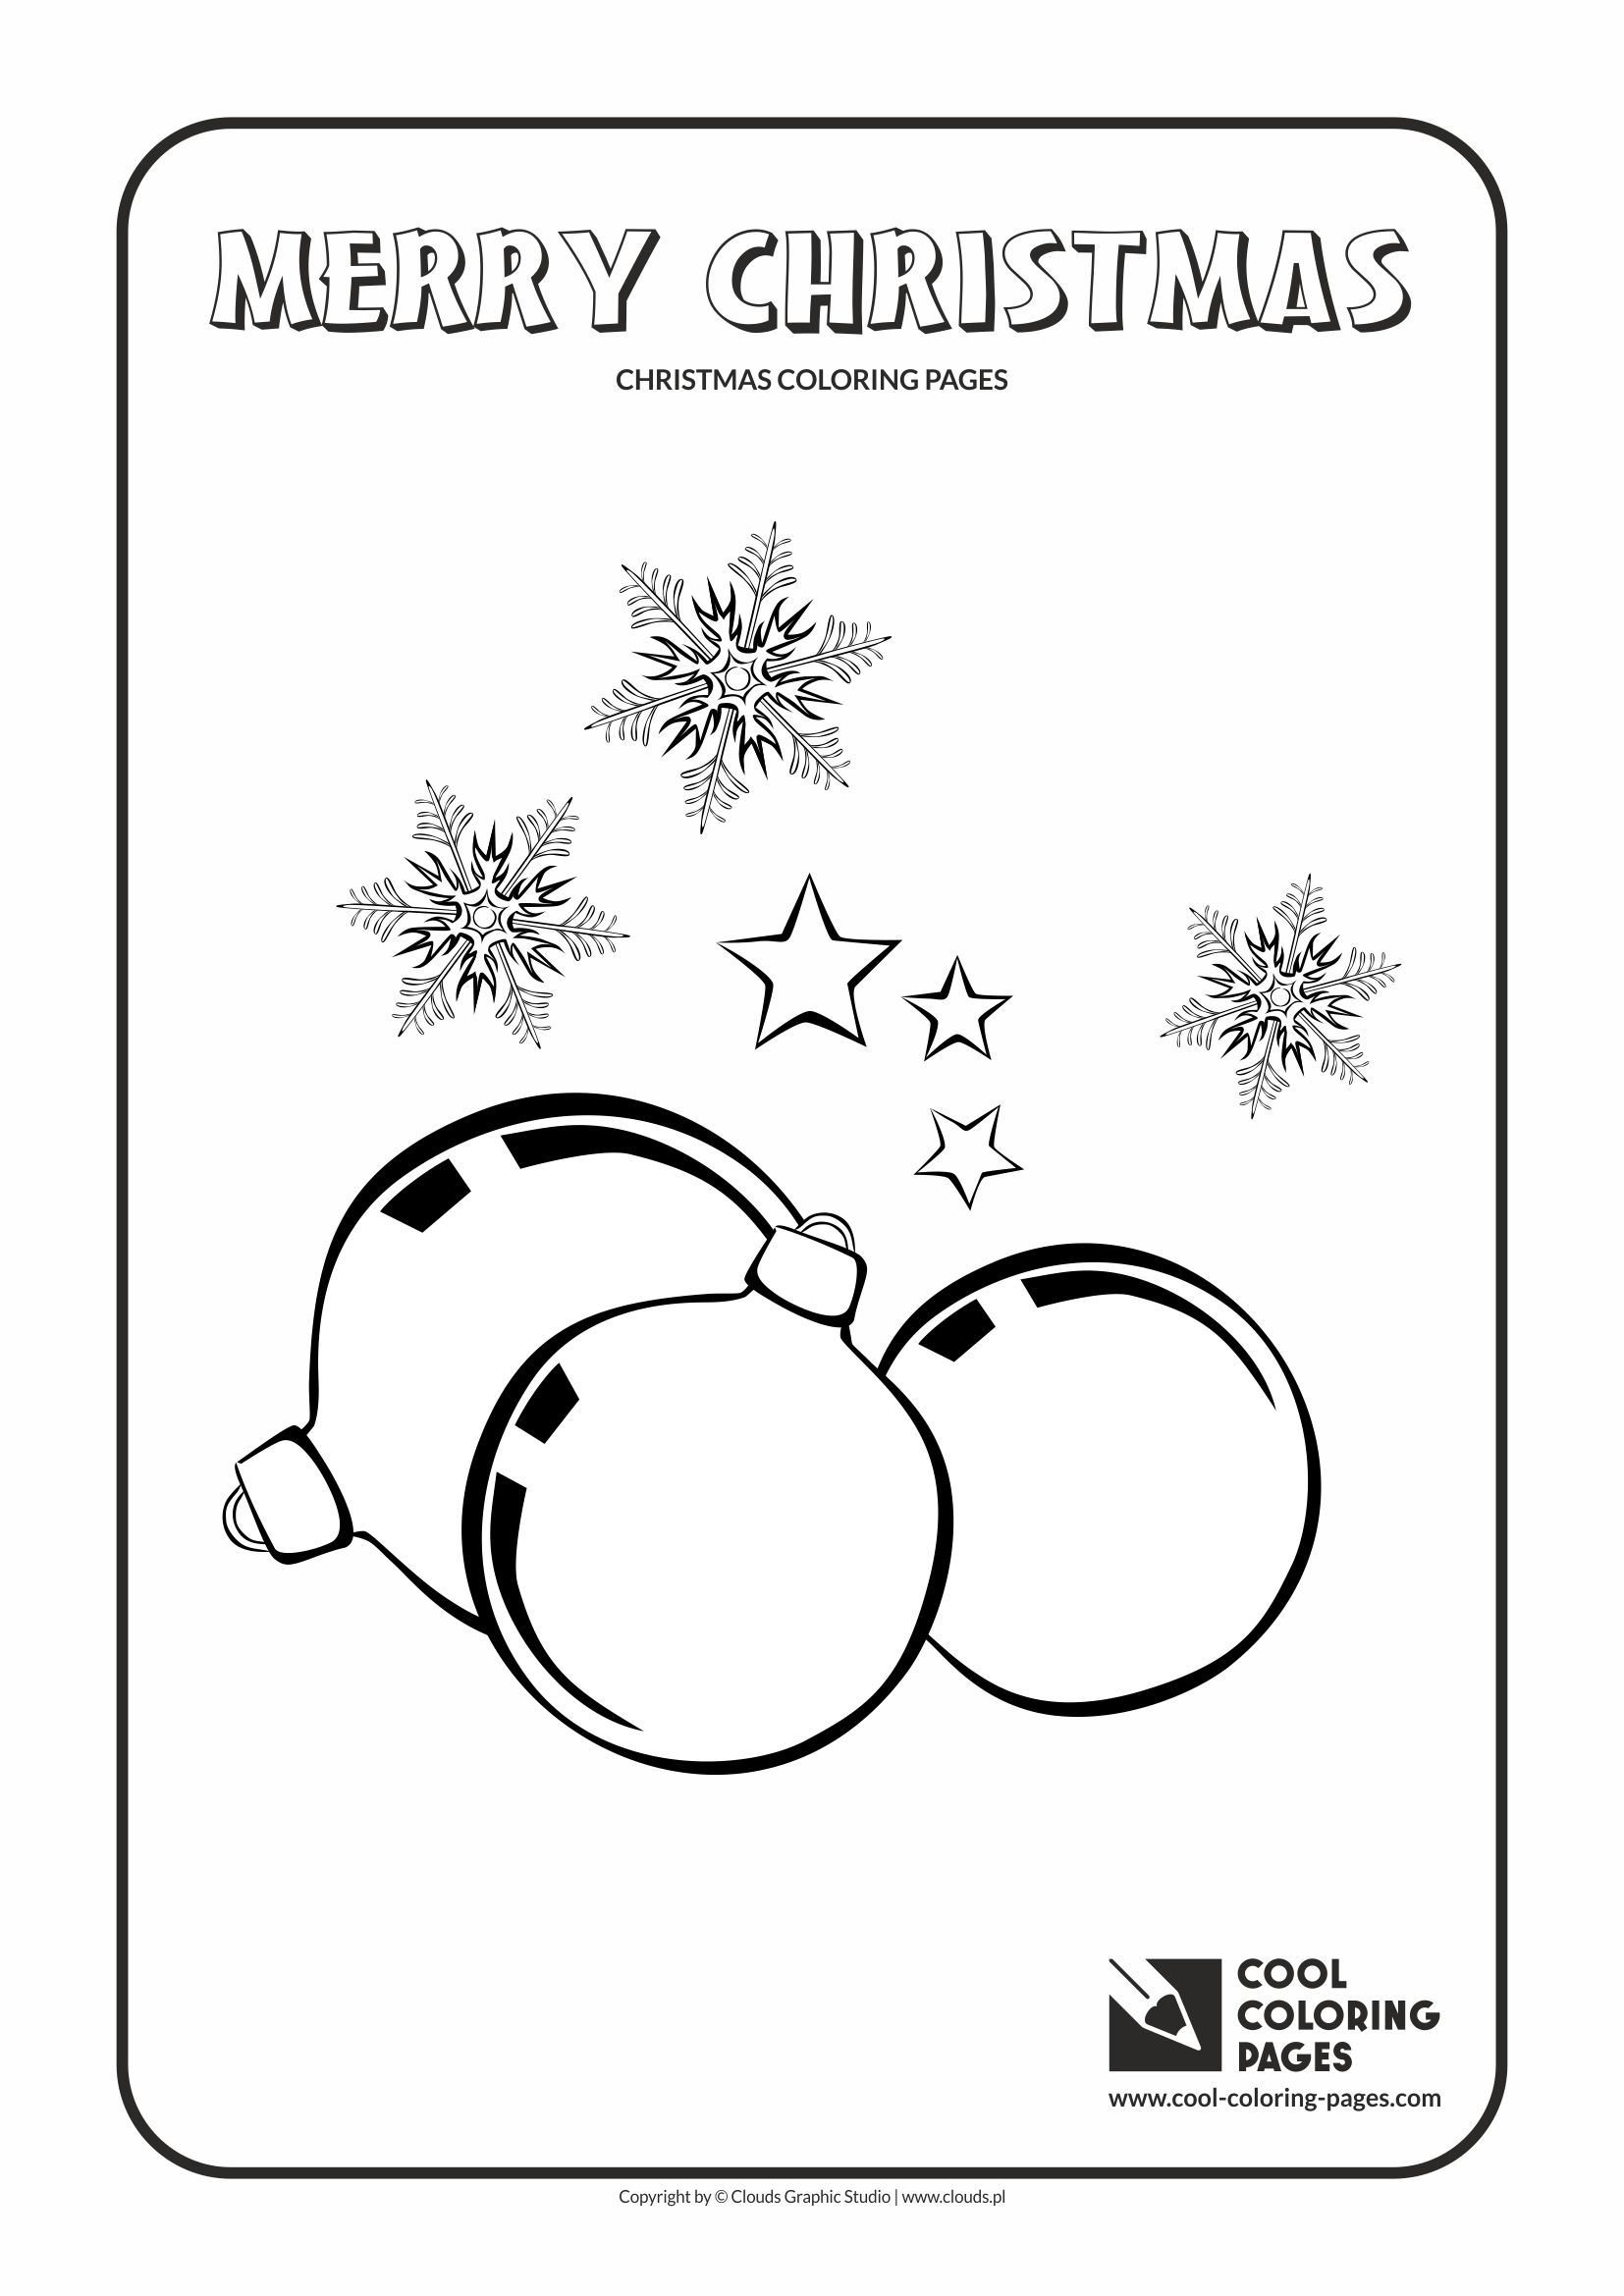 Cool Coloring Pages - Holidays / Christmas glass balls no 1 / Coloring page with Christmas glass balls no 1